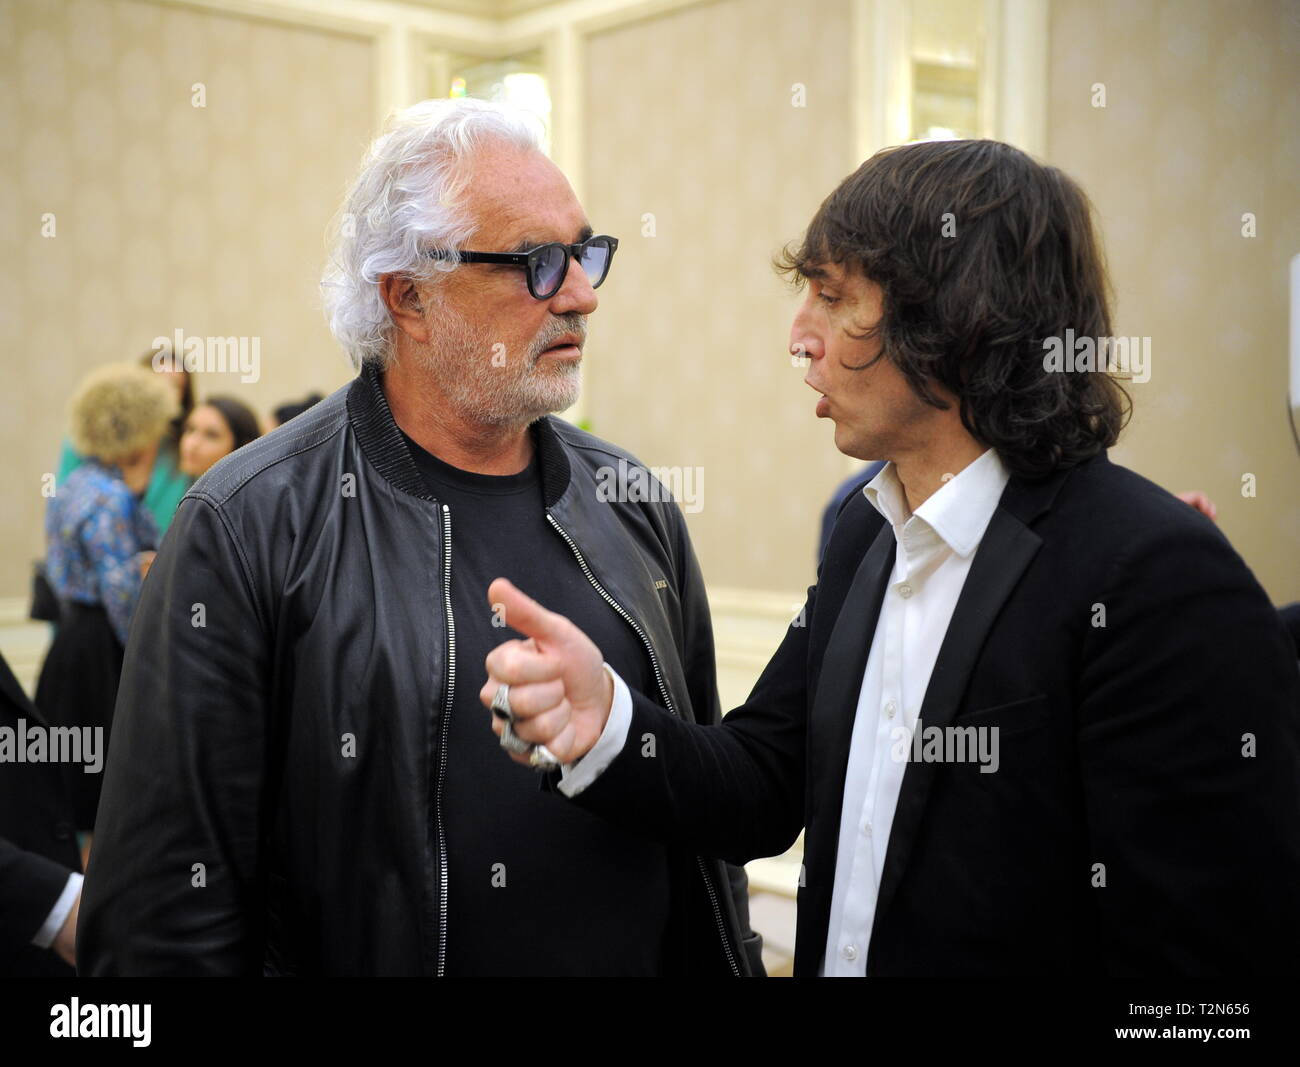 quality design 098e8 9ef5a Milan, Award and journalism in the photo Flavio Briatore and ...